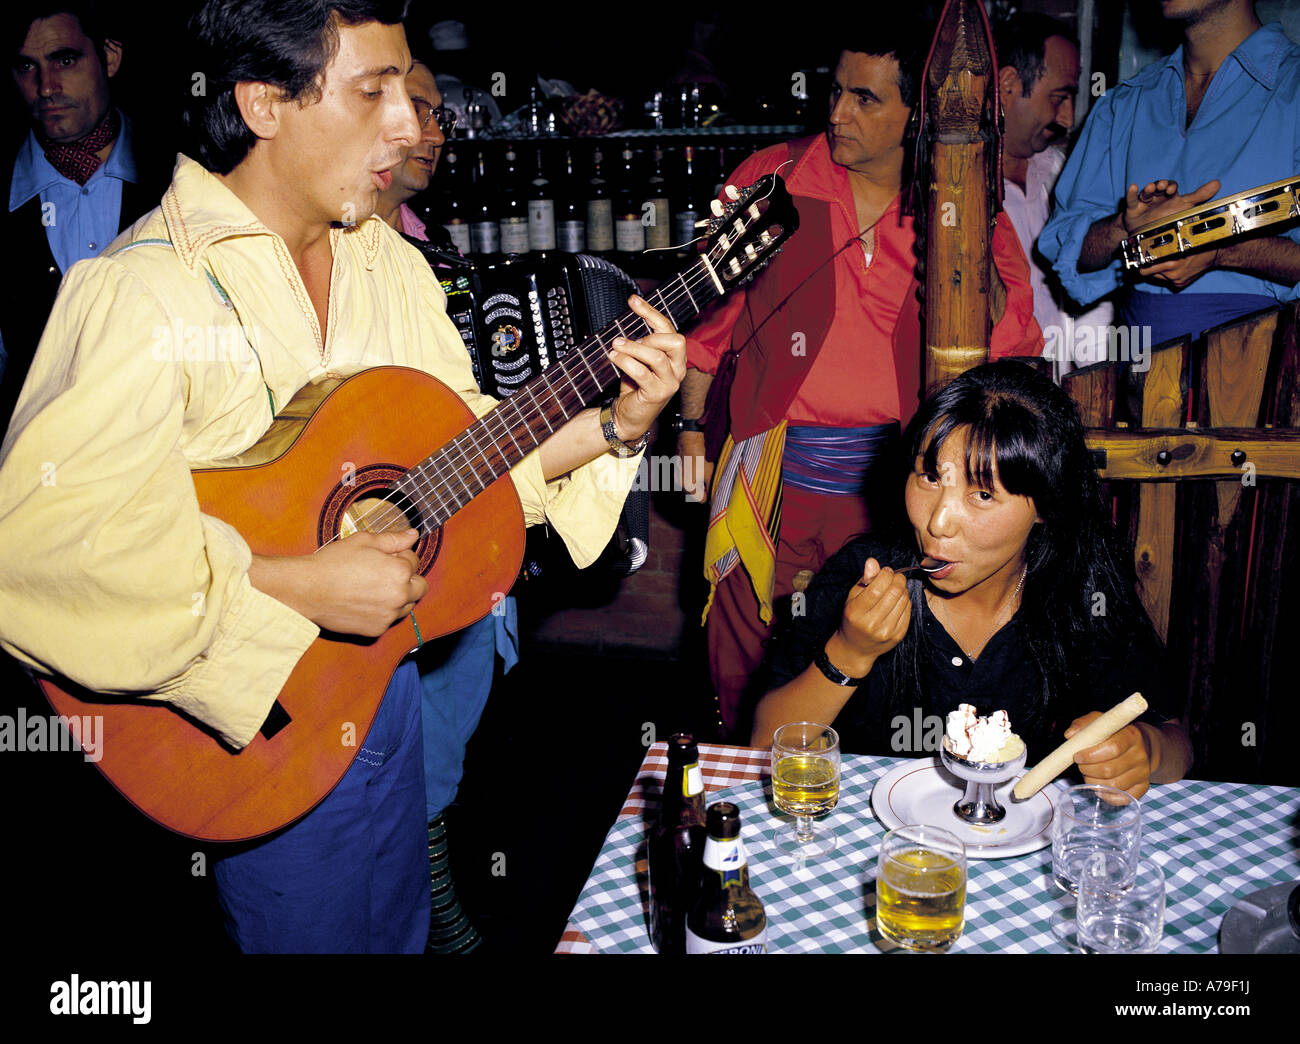 Canzone singer serenades Japanese tourist in Rome Italy restaurant - Stock Image